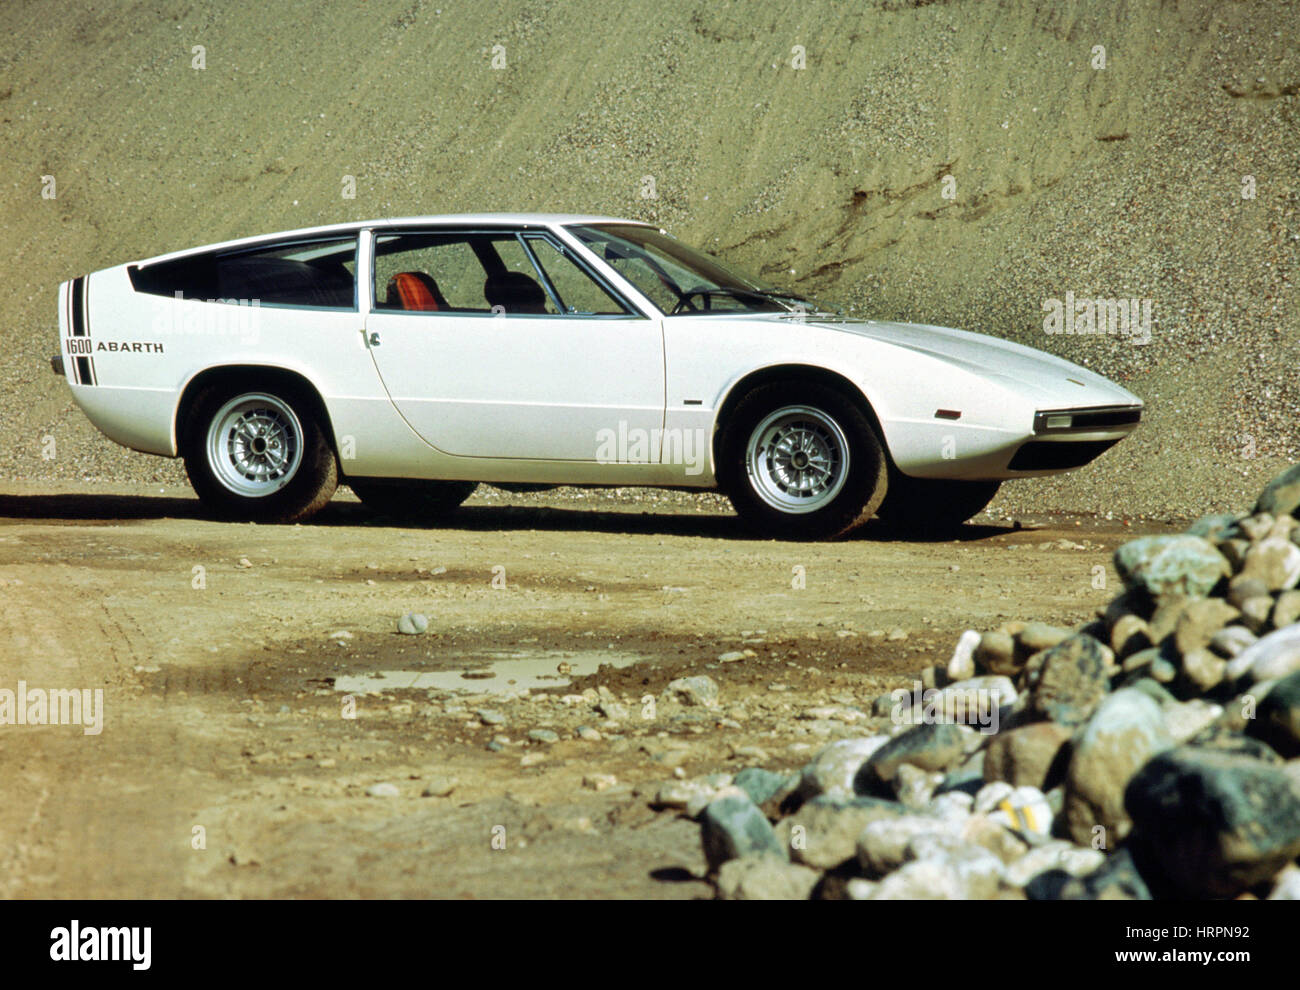 1969 Fiat Arbarth - Stock Image